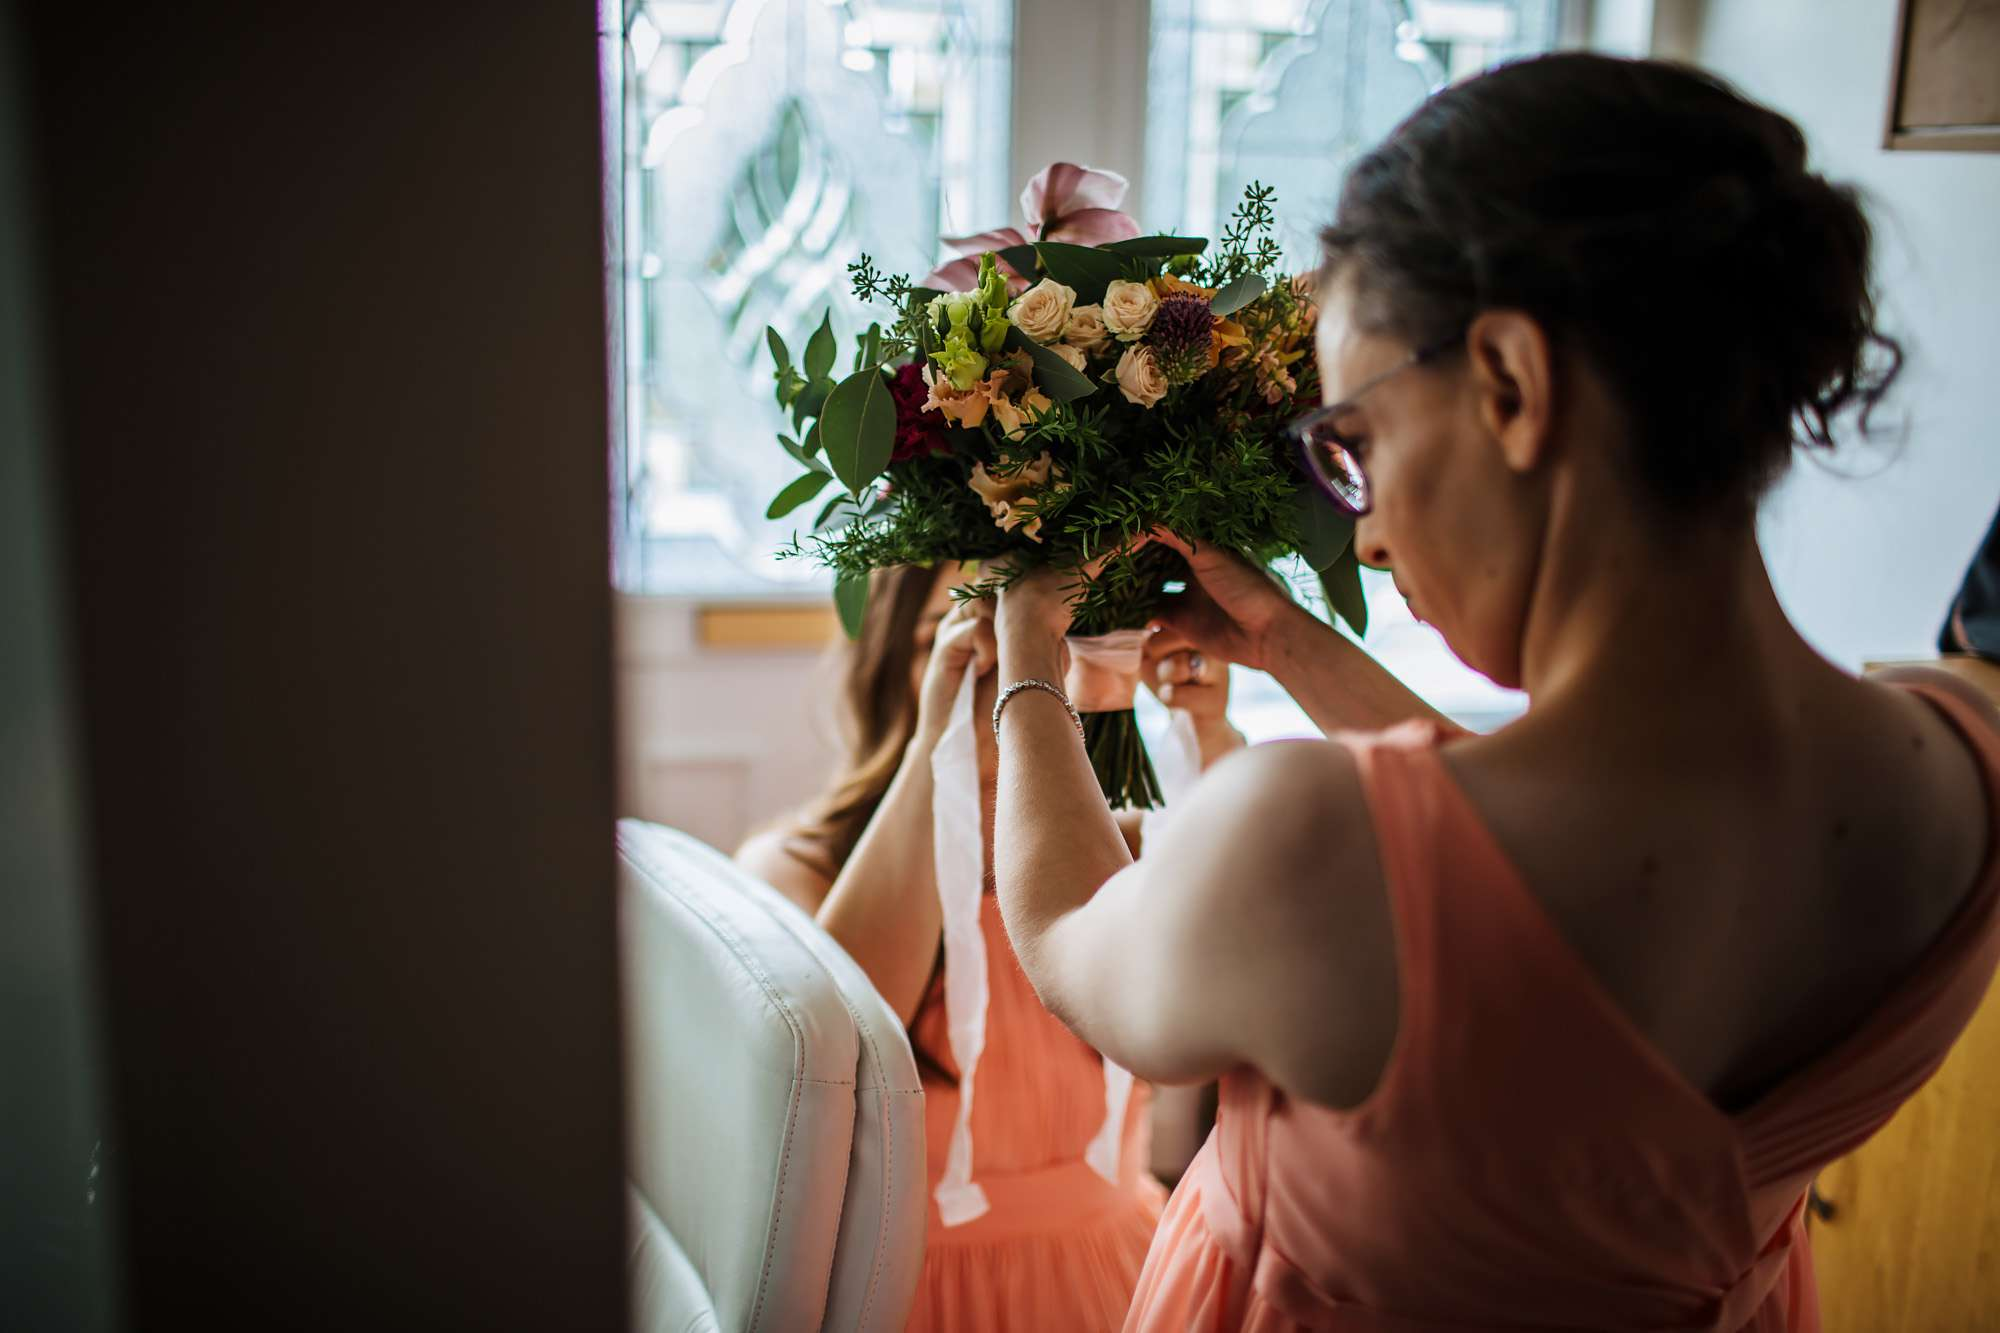 Bridesmaid holding the bride's bouquet at a wedding